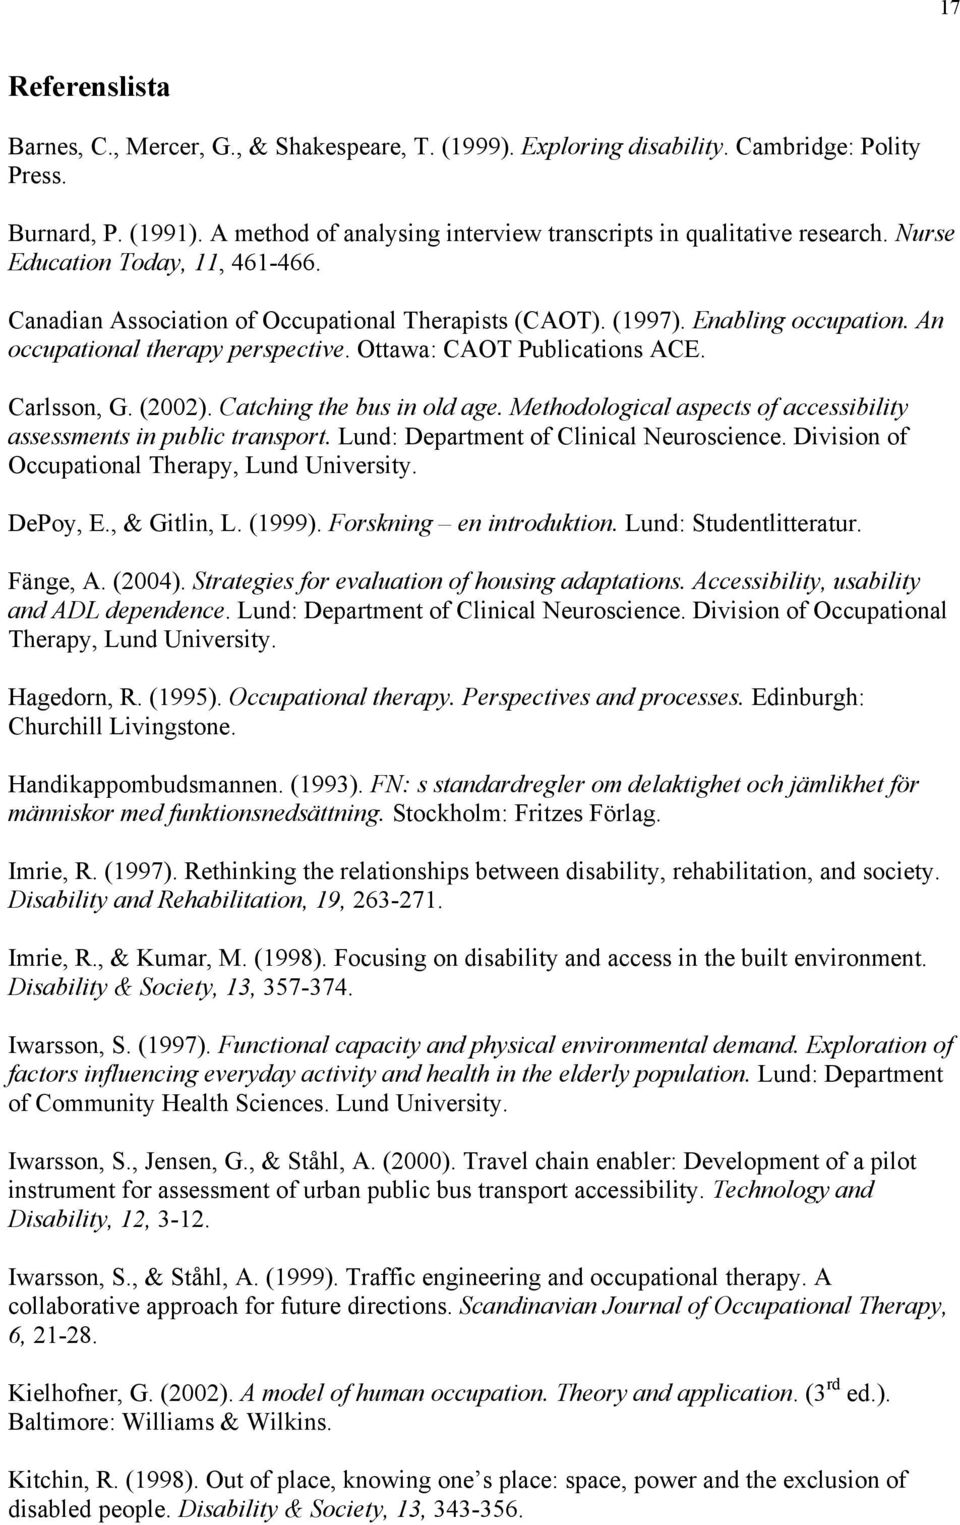 An occupational therapy perspective. Ottawa: CAOT Publications ACE. Carlsson, G. (2002). Catching the bus in old age. Methodological aspects of accessibility assessments in public transport.